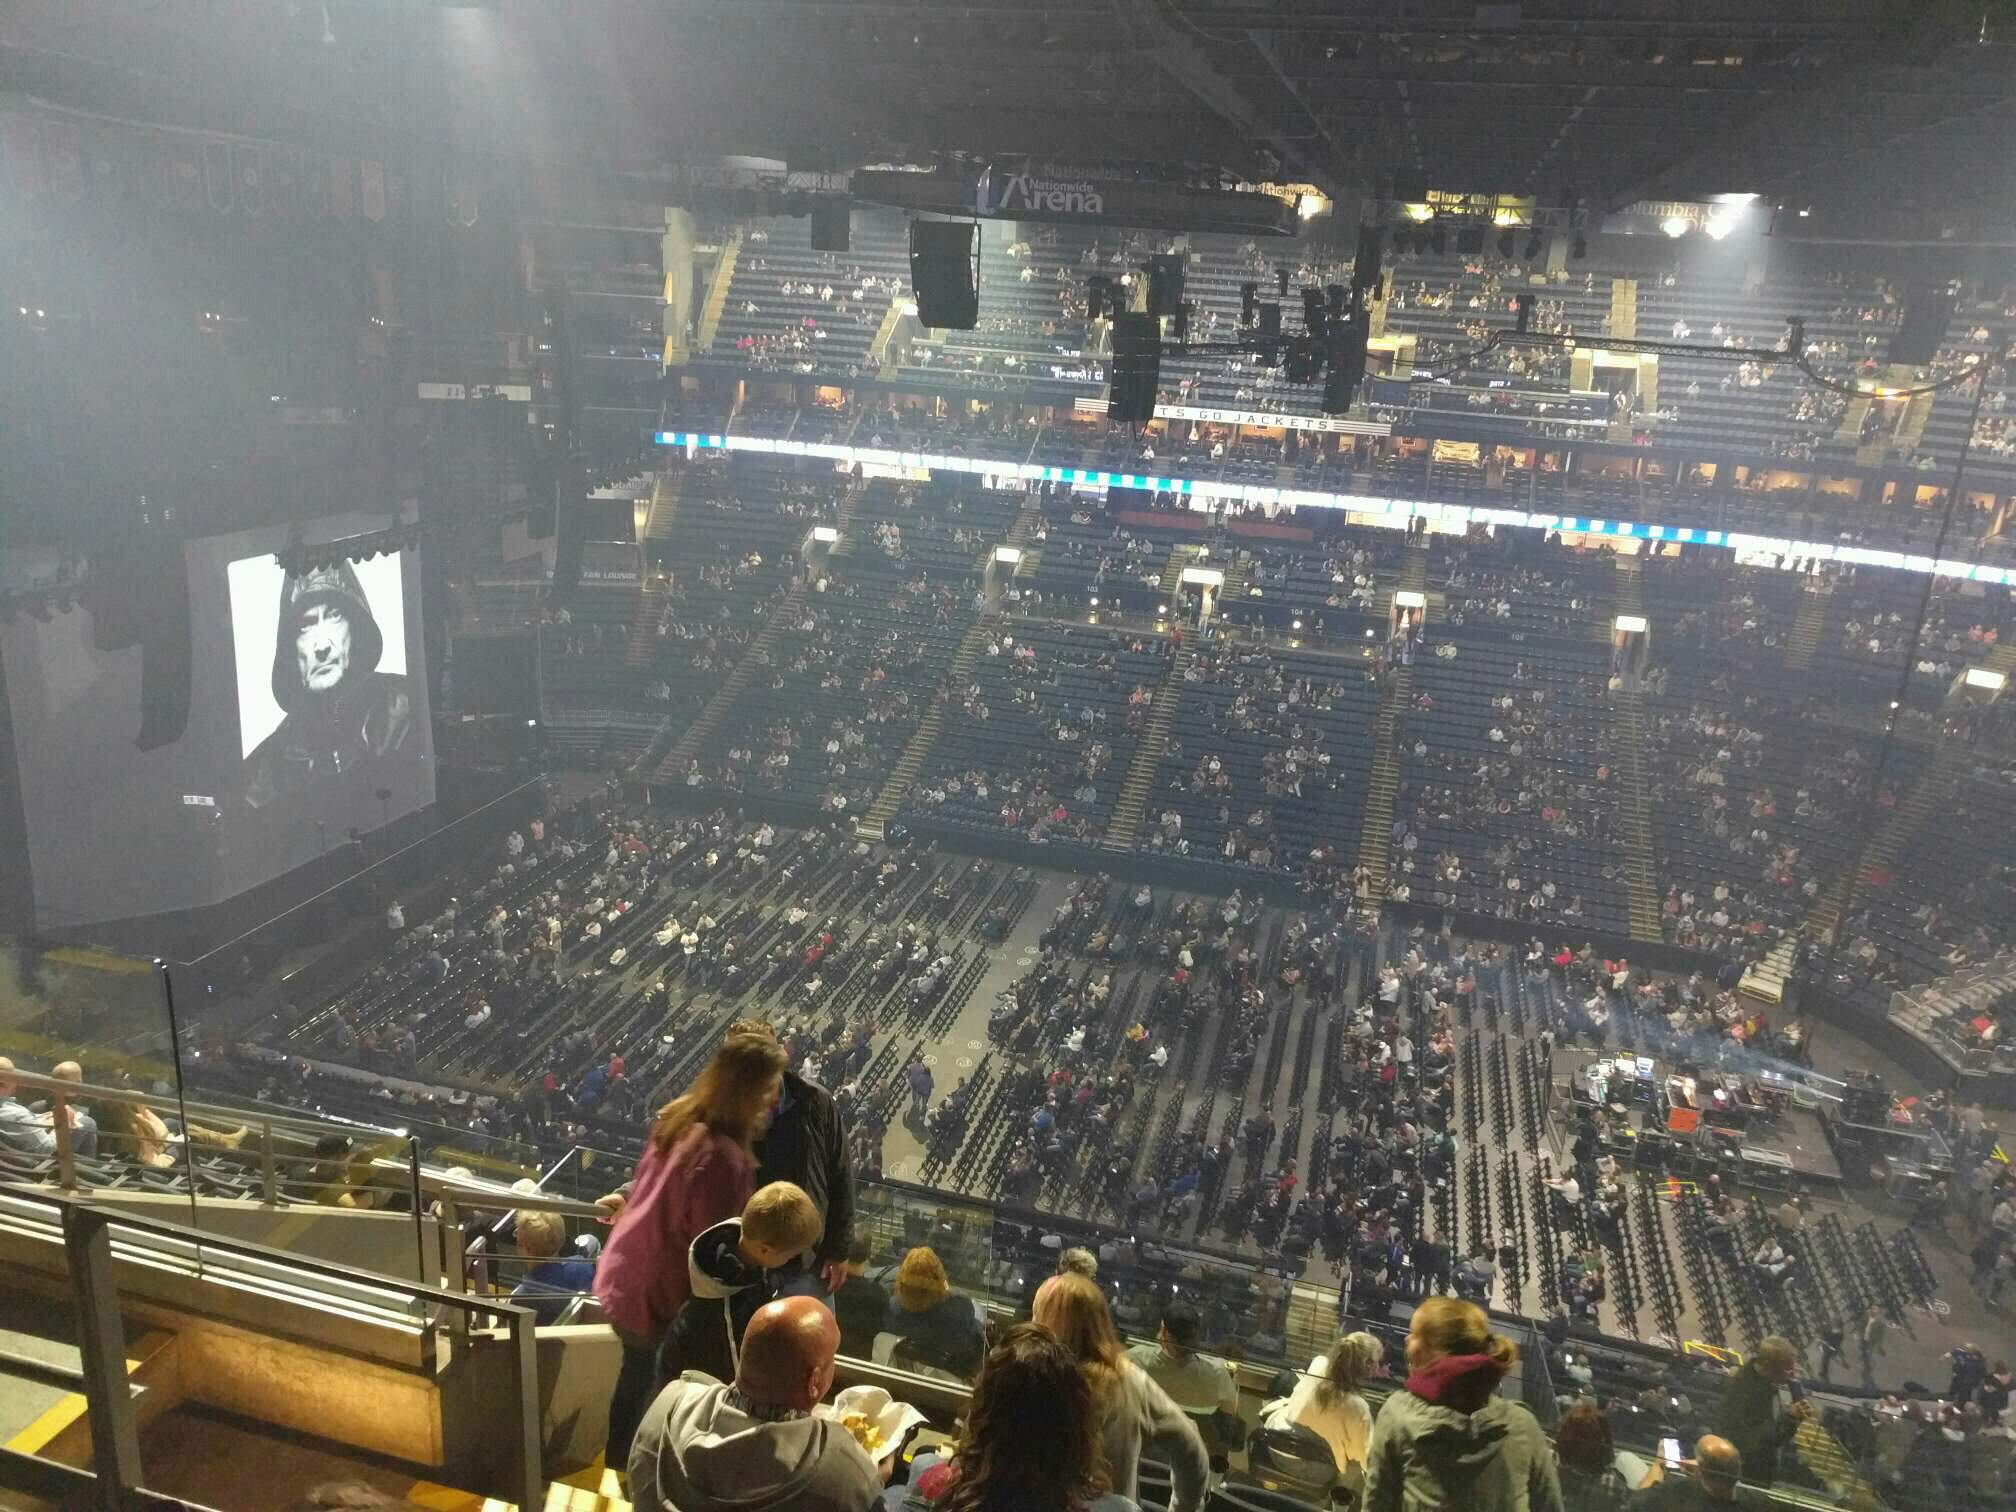 Nationwide Arena Section 216 Row l Seat 18